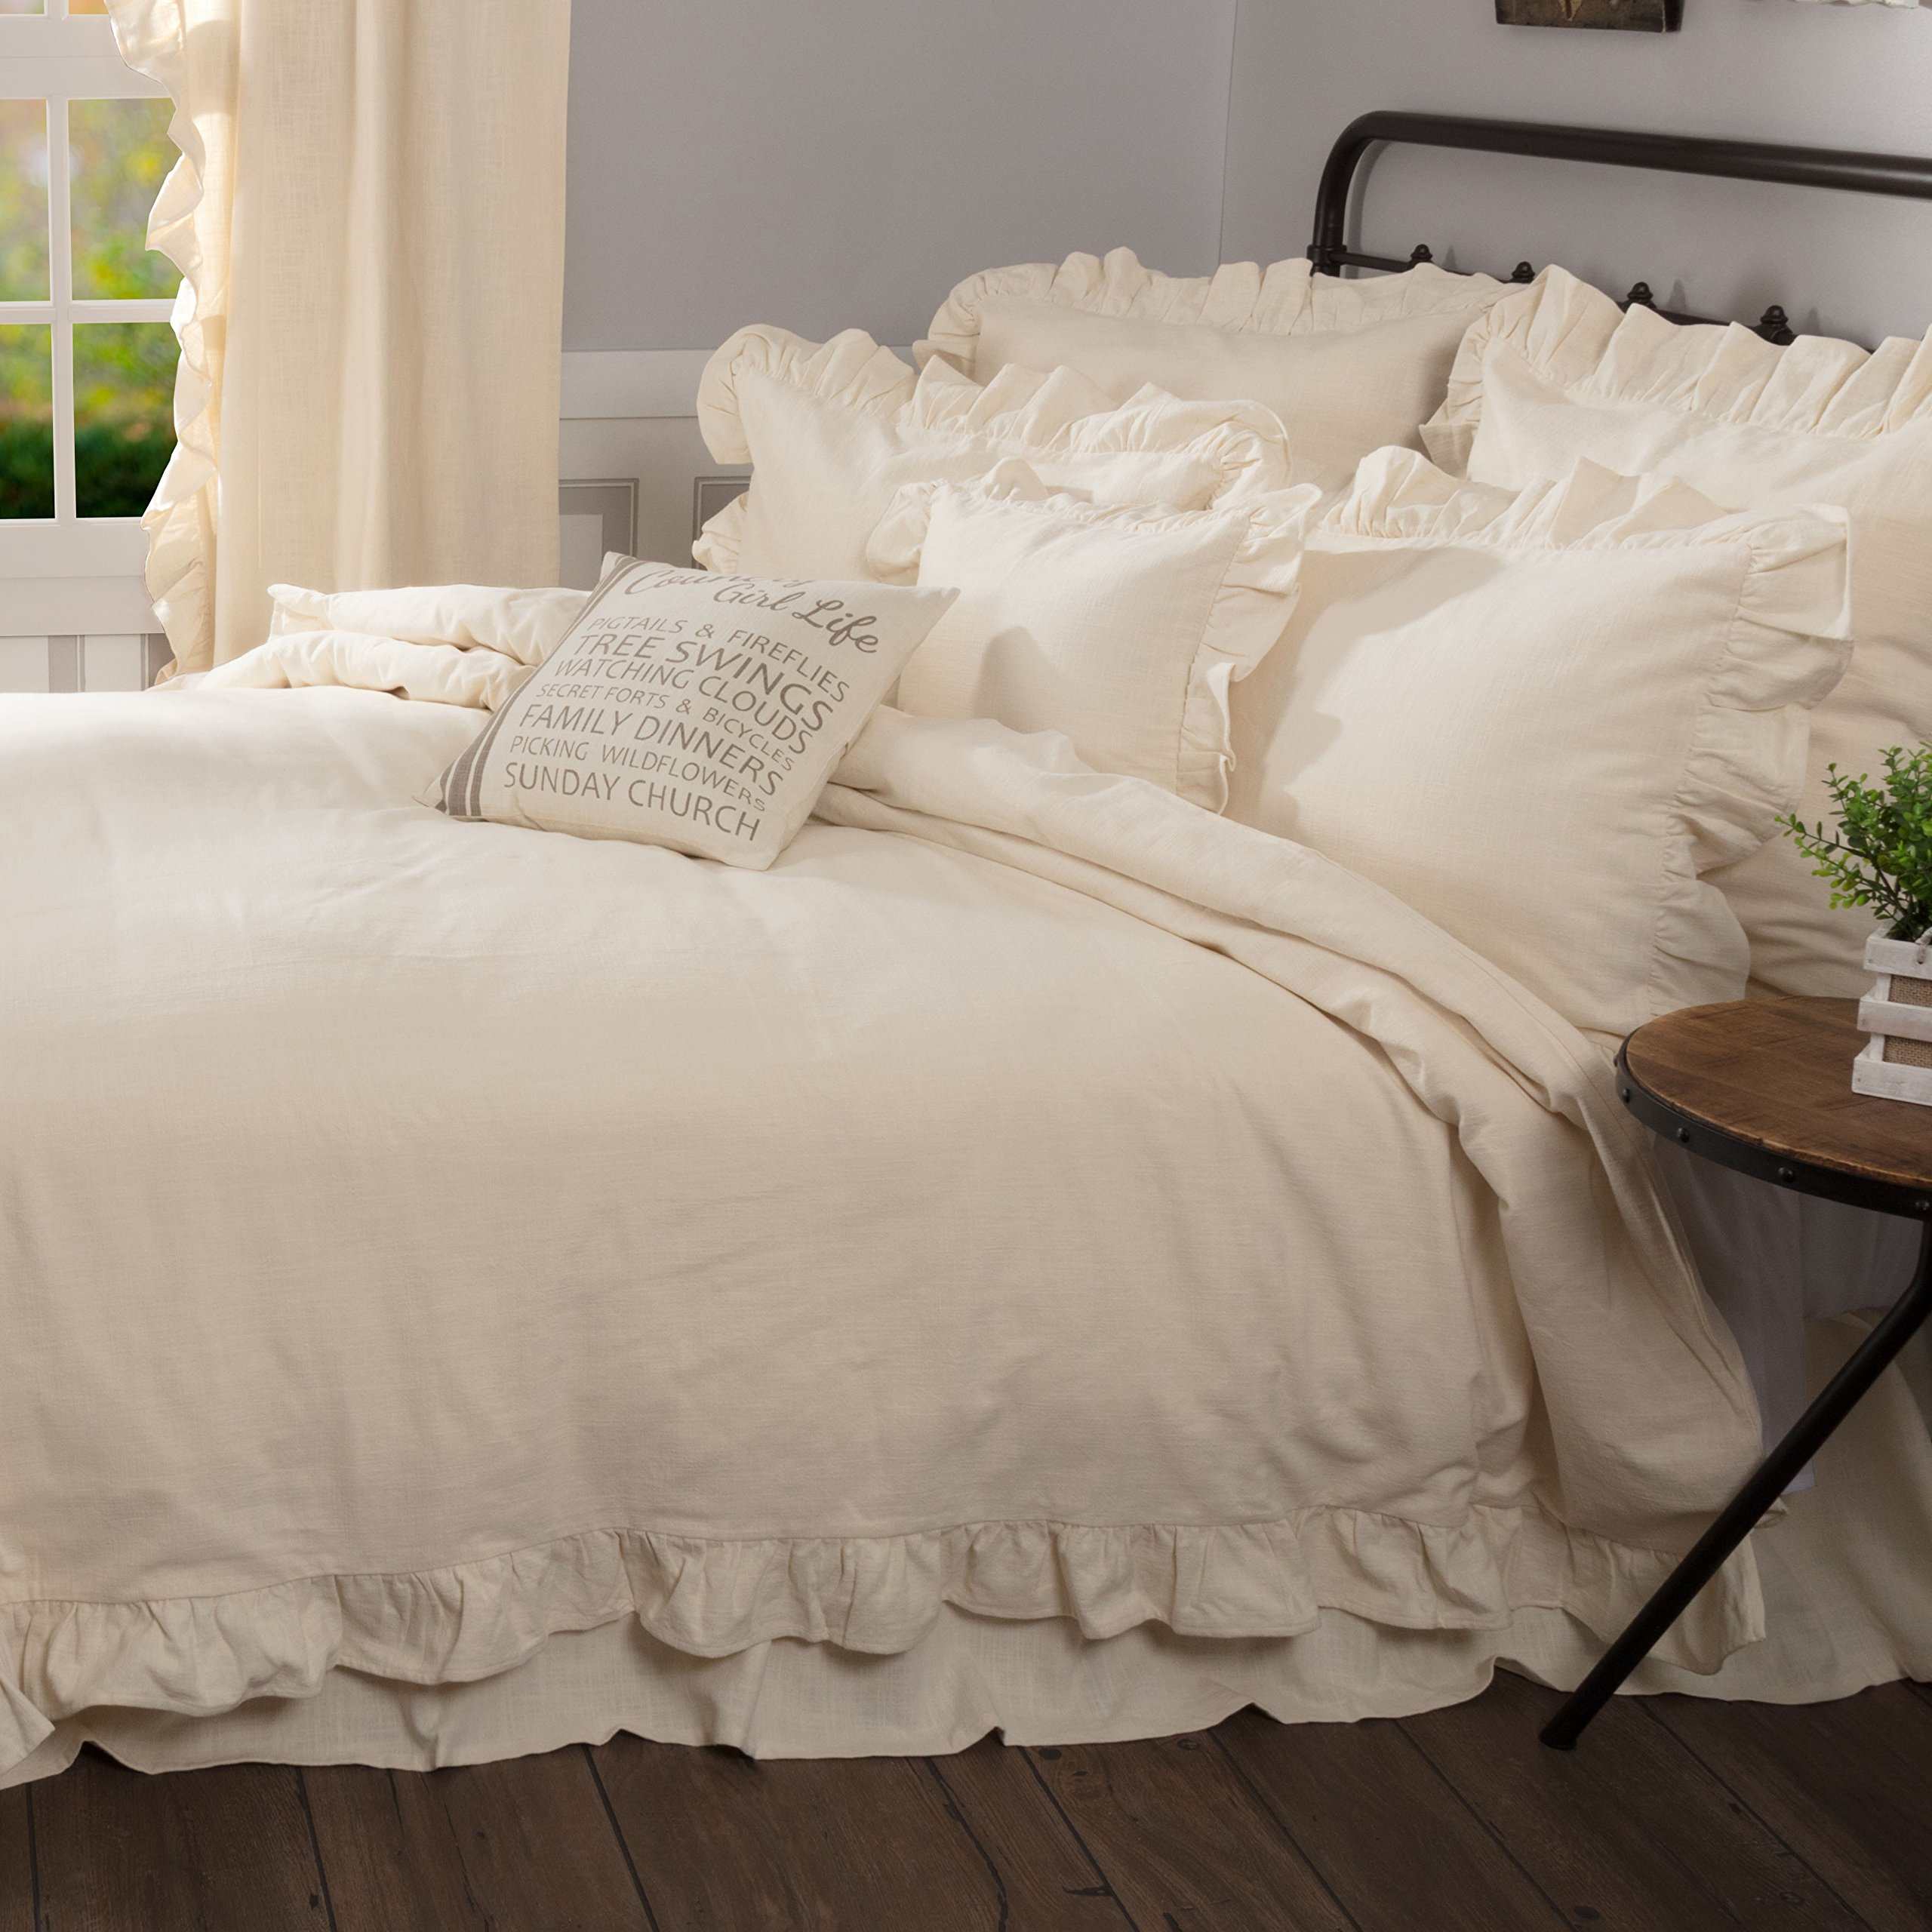 Ashley Natural King Ruffled Duvet Cover, 92x108, Farmhouse Style Beige Cream Comforter Cover